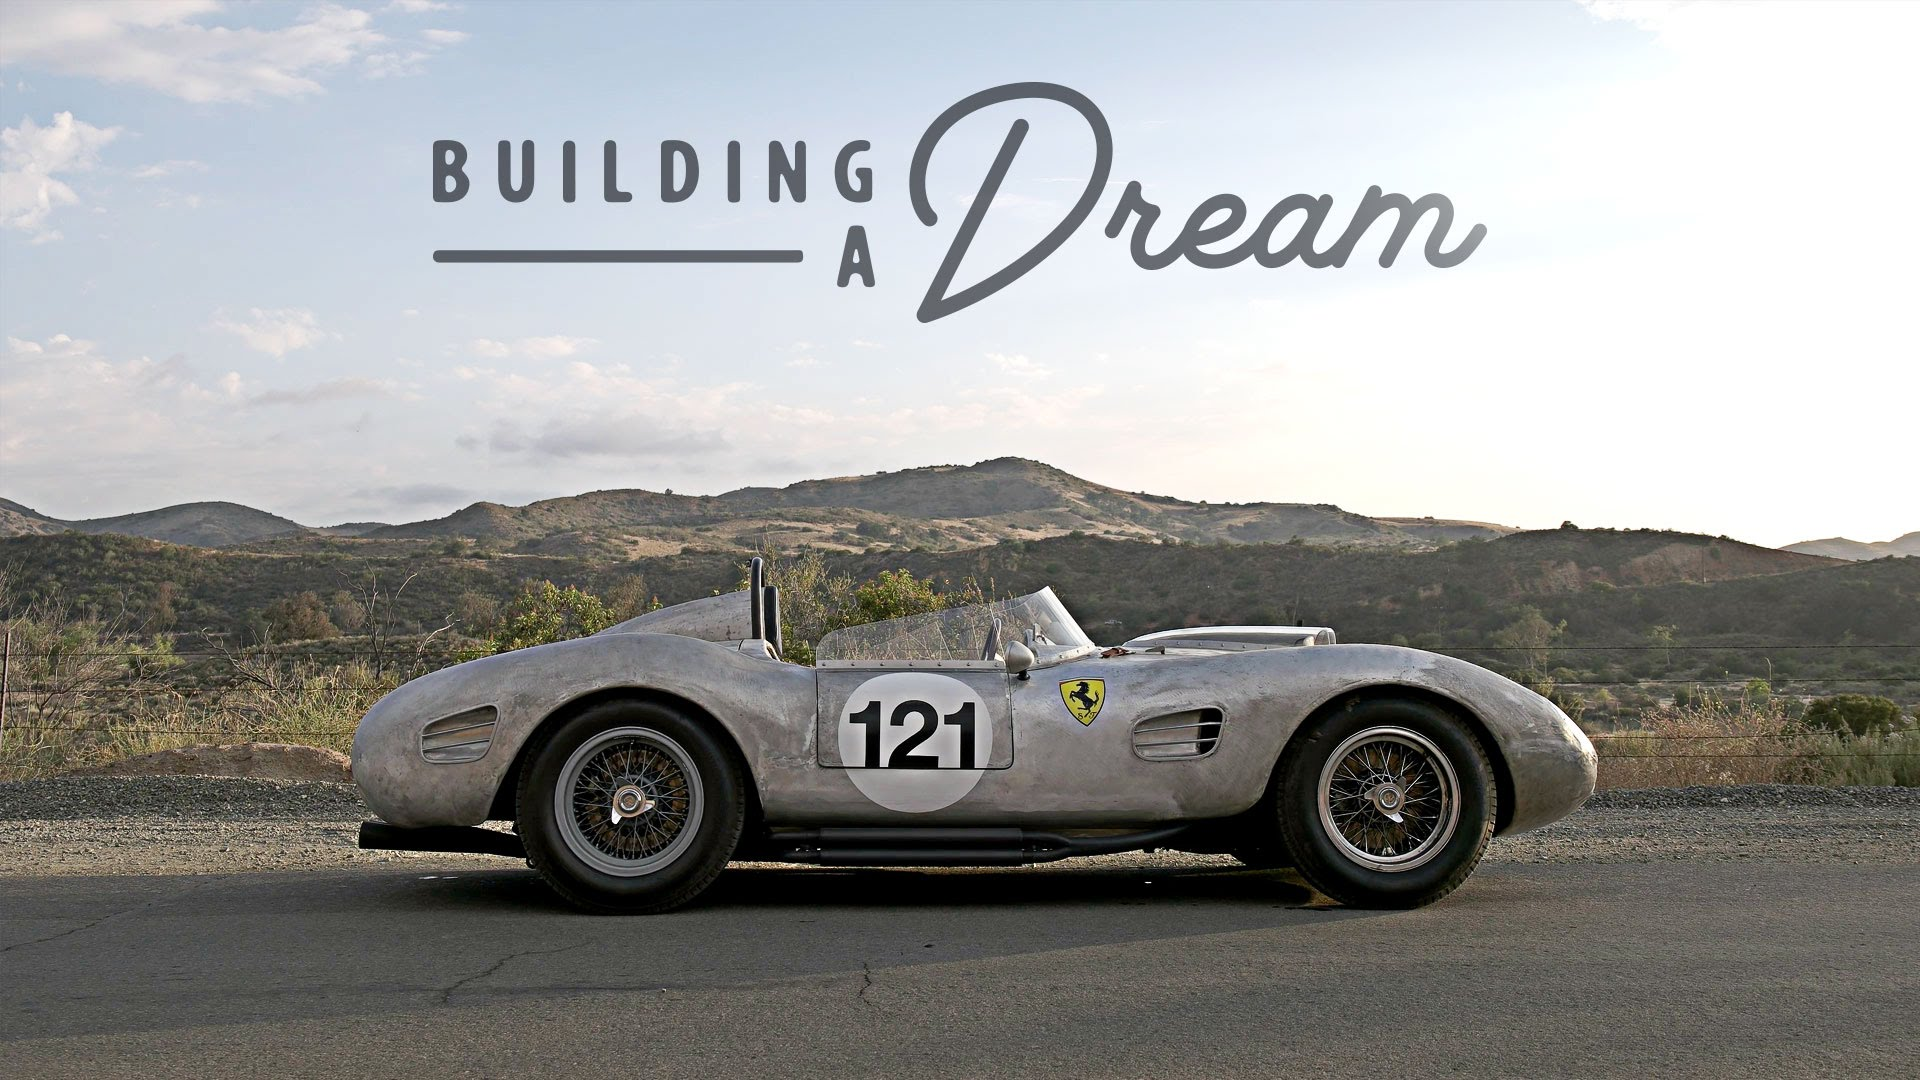 This Guy Built His Own Ferrari 250 Tr Horsepowerkingscom